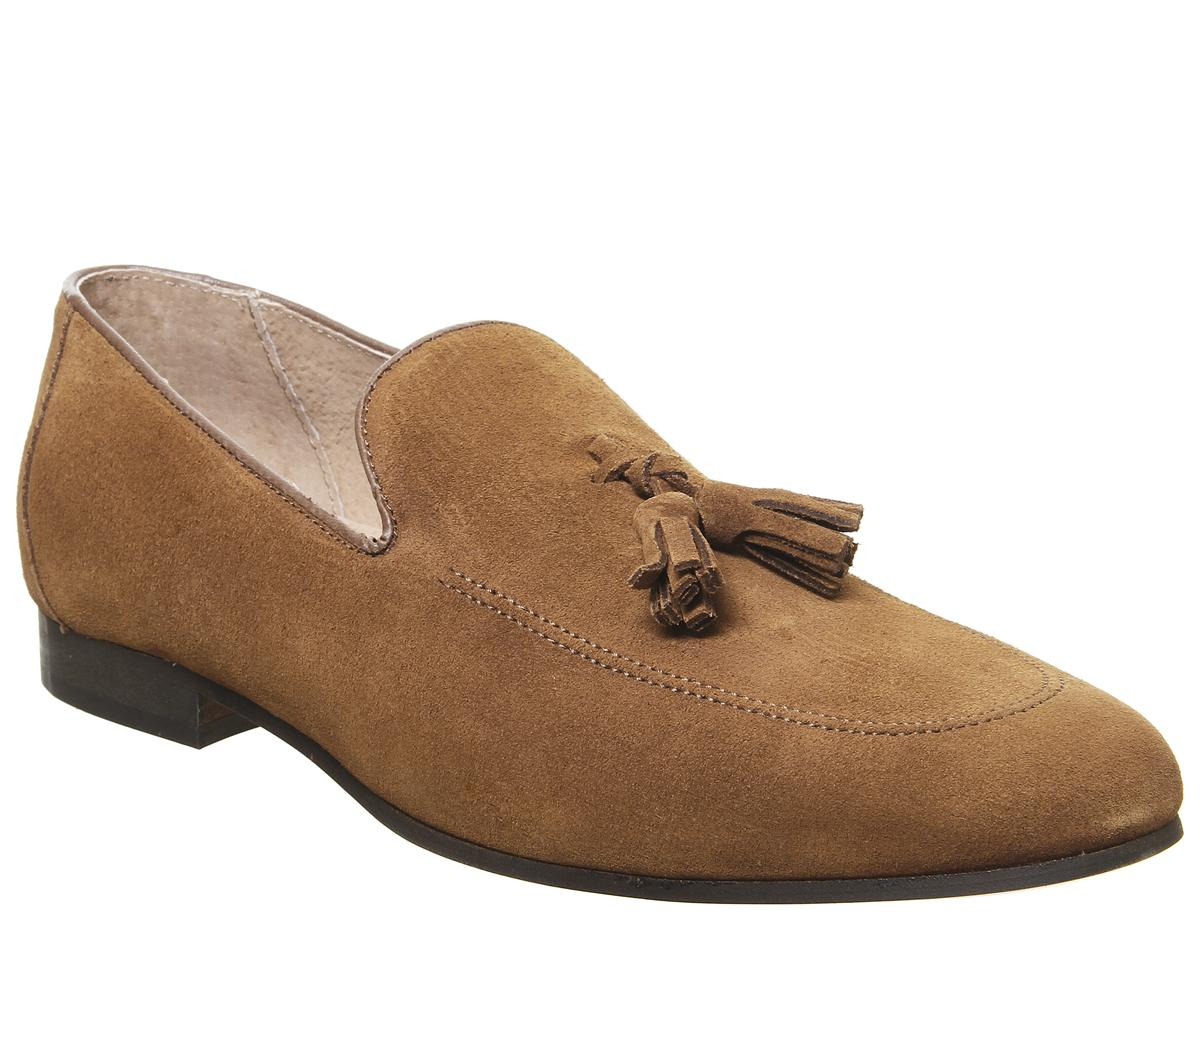 Mens Office Canter Tassel Loafer Tan Suede